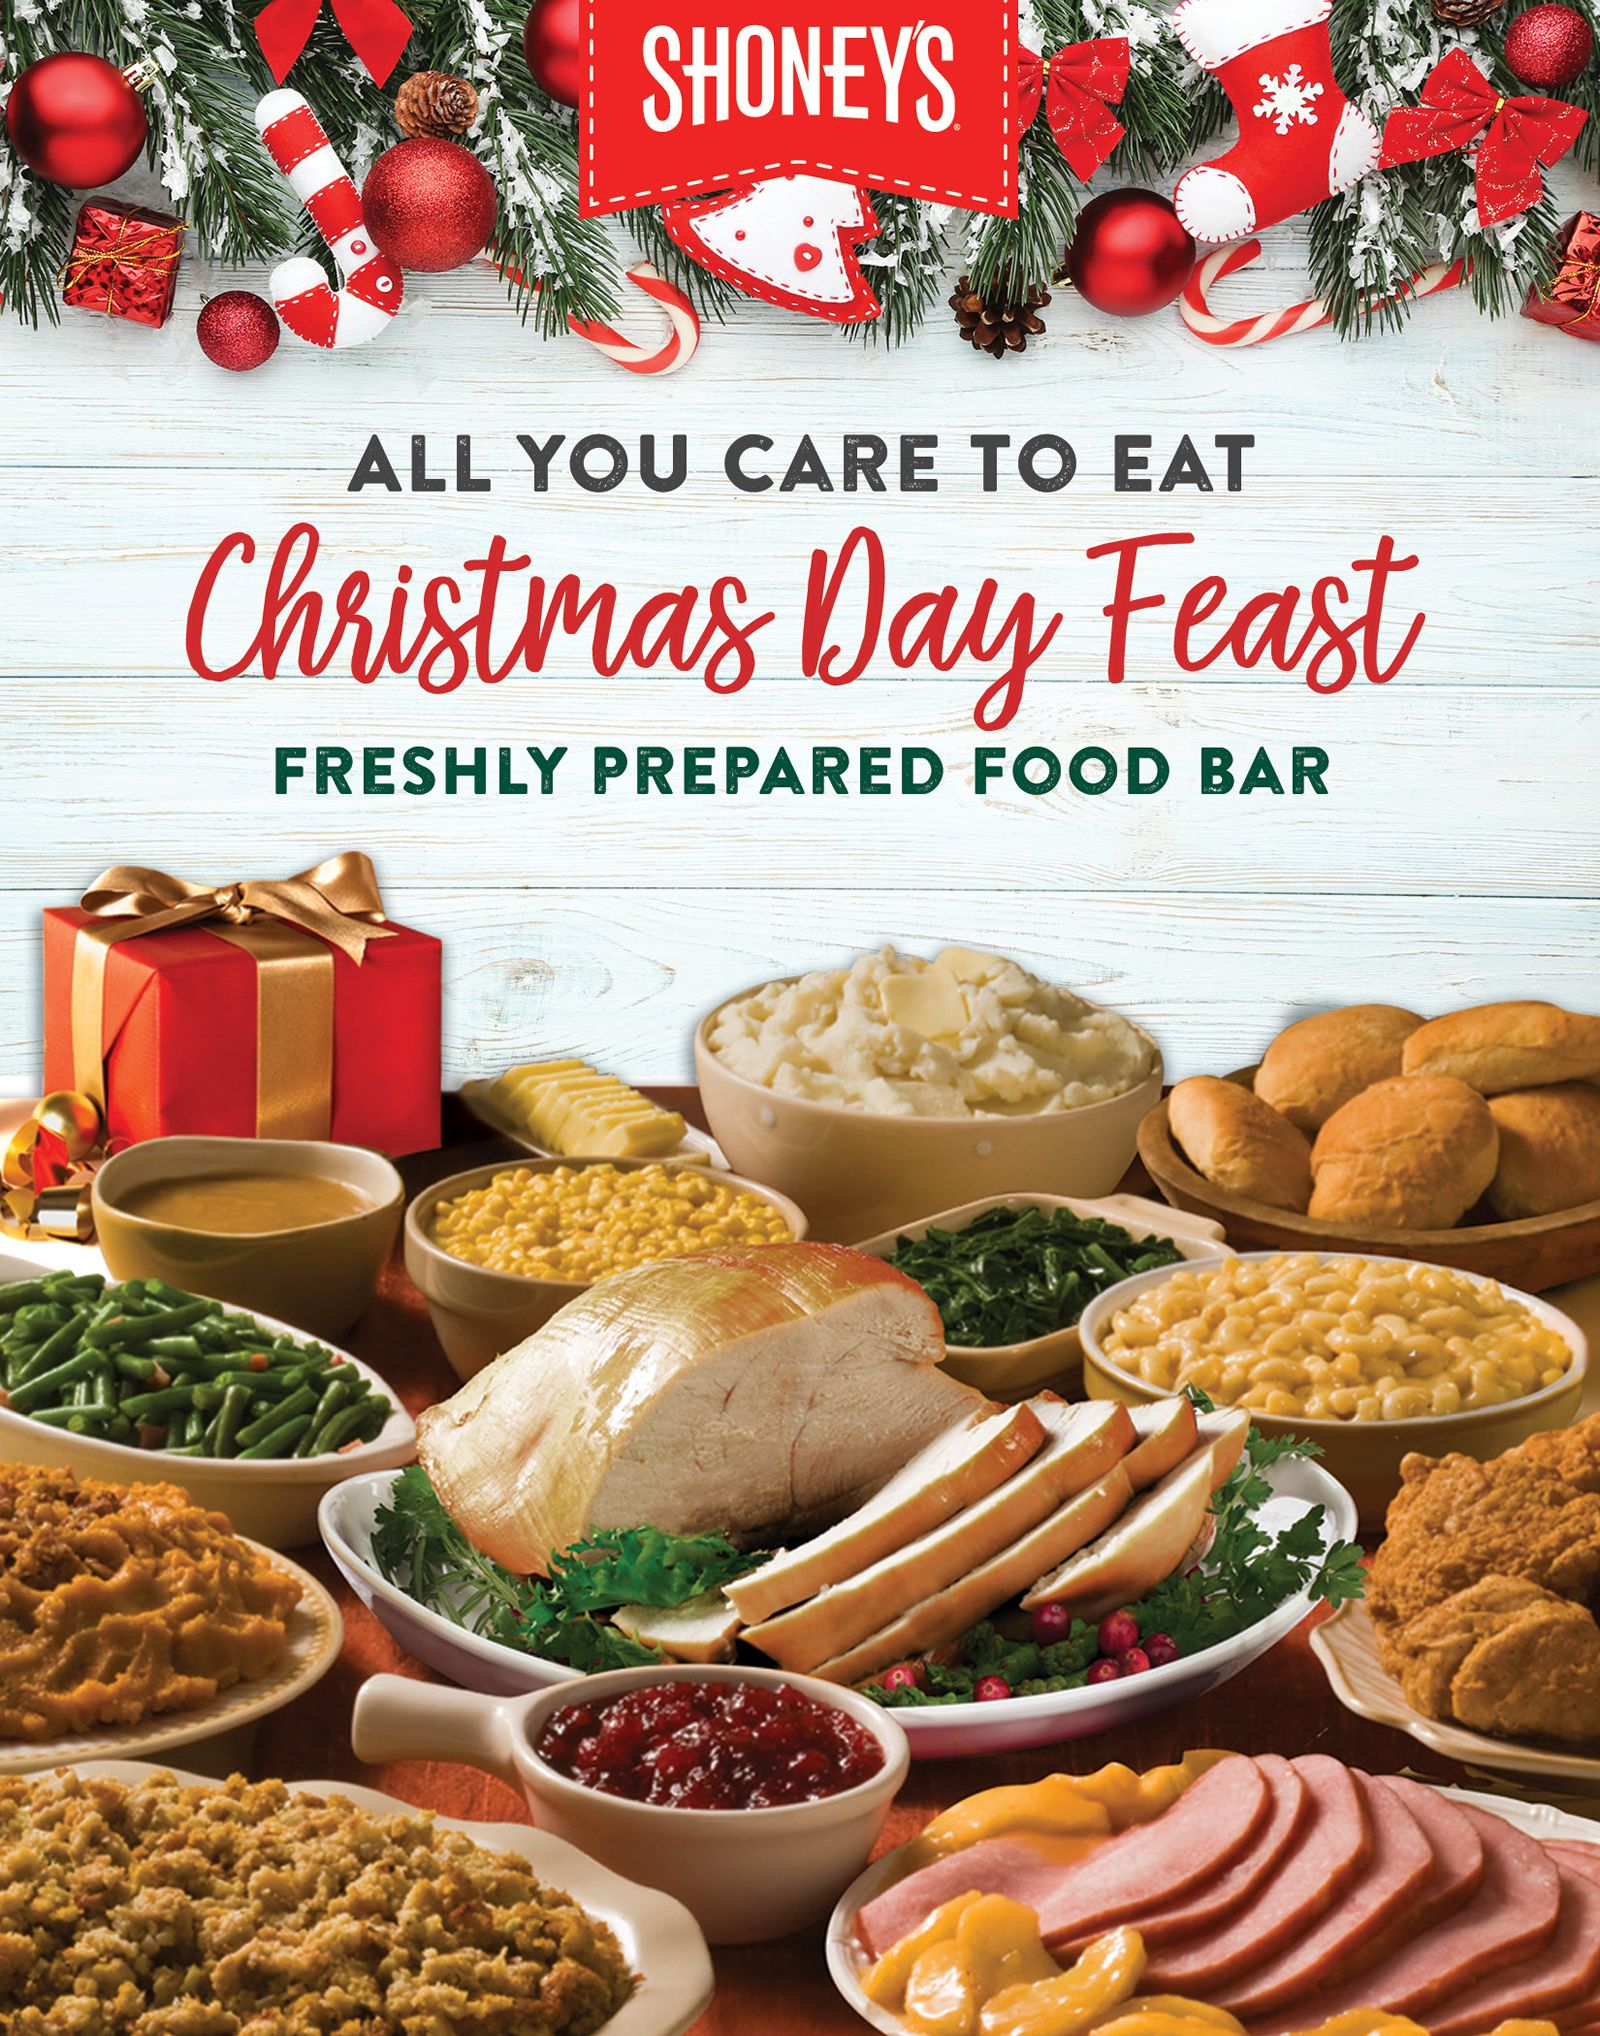 Shoney's Doors Will be Open for a Christmas Day Feast on Wednesday, December 25 and will Feature a Spectacular All You Care to Eat, Freshly Prepared Food Bar!